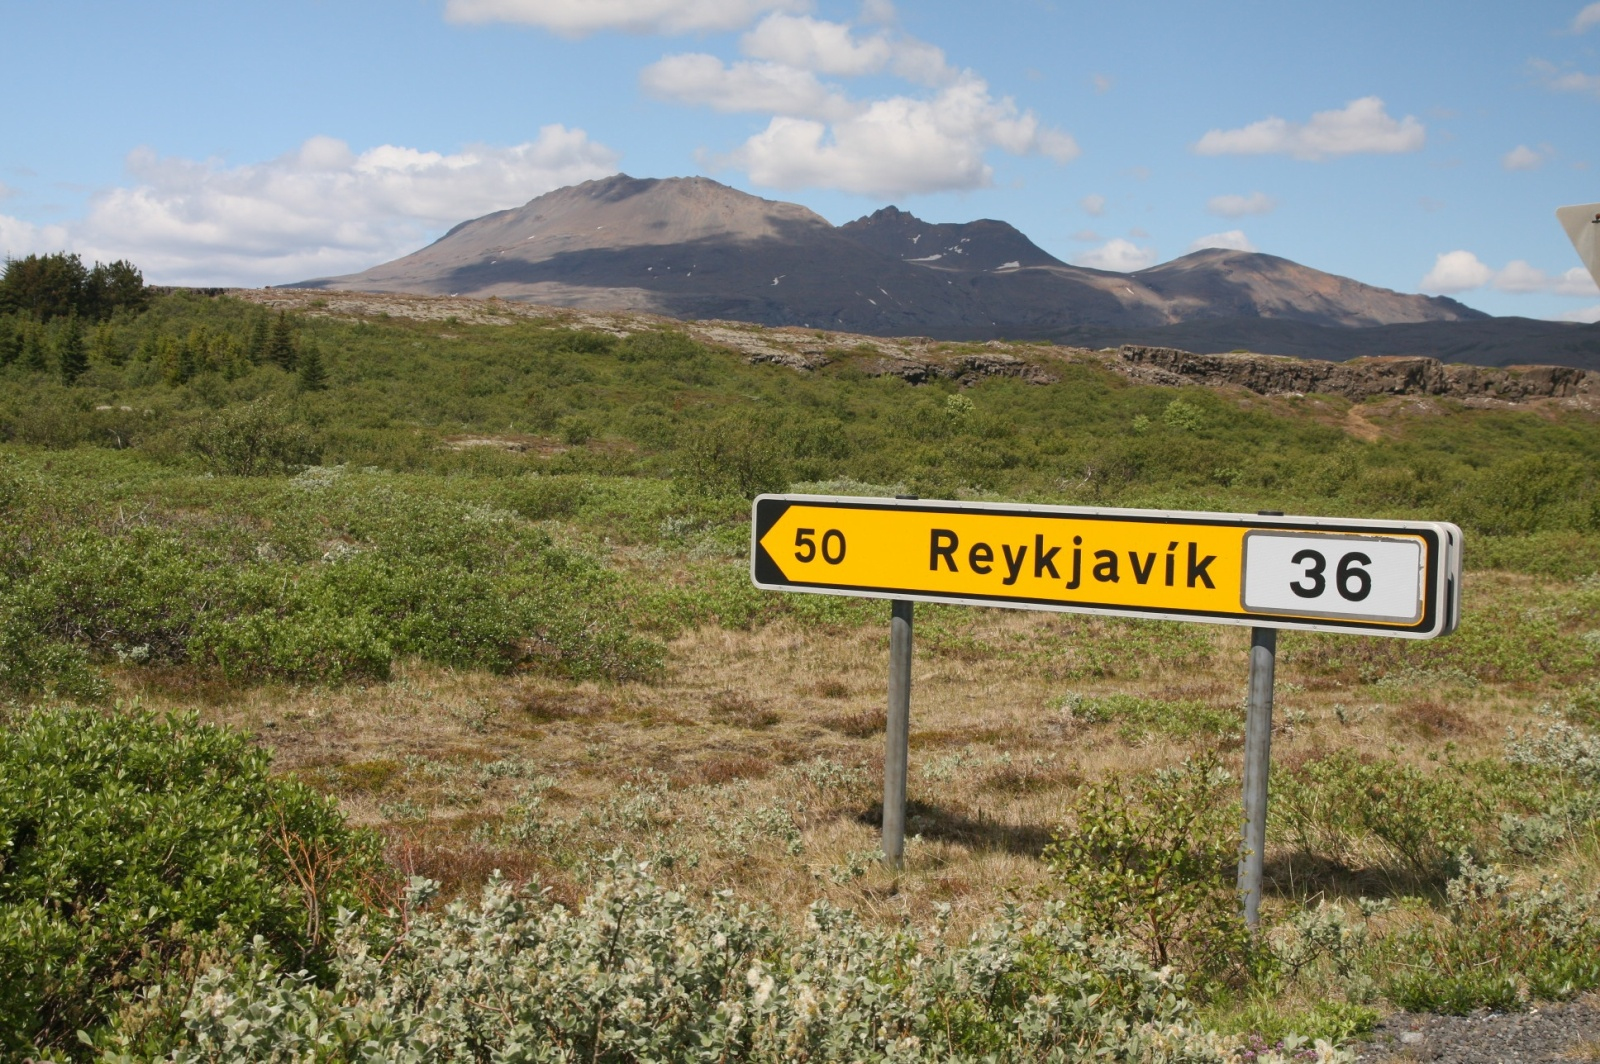 Road signs are yellow in Iceland - these are well visible during the long and dark winter